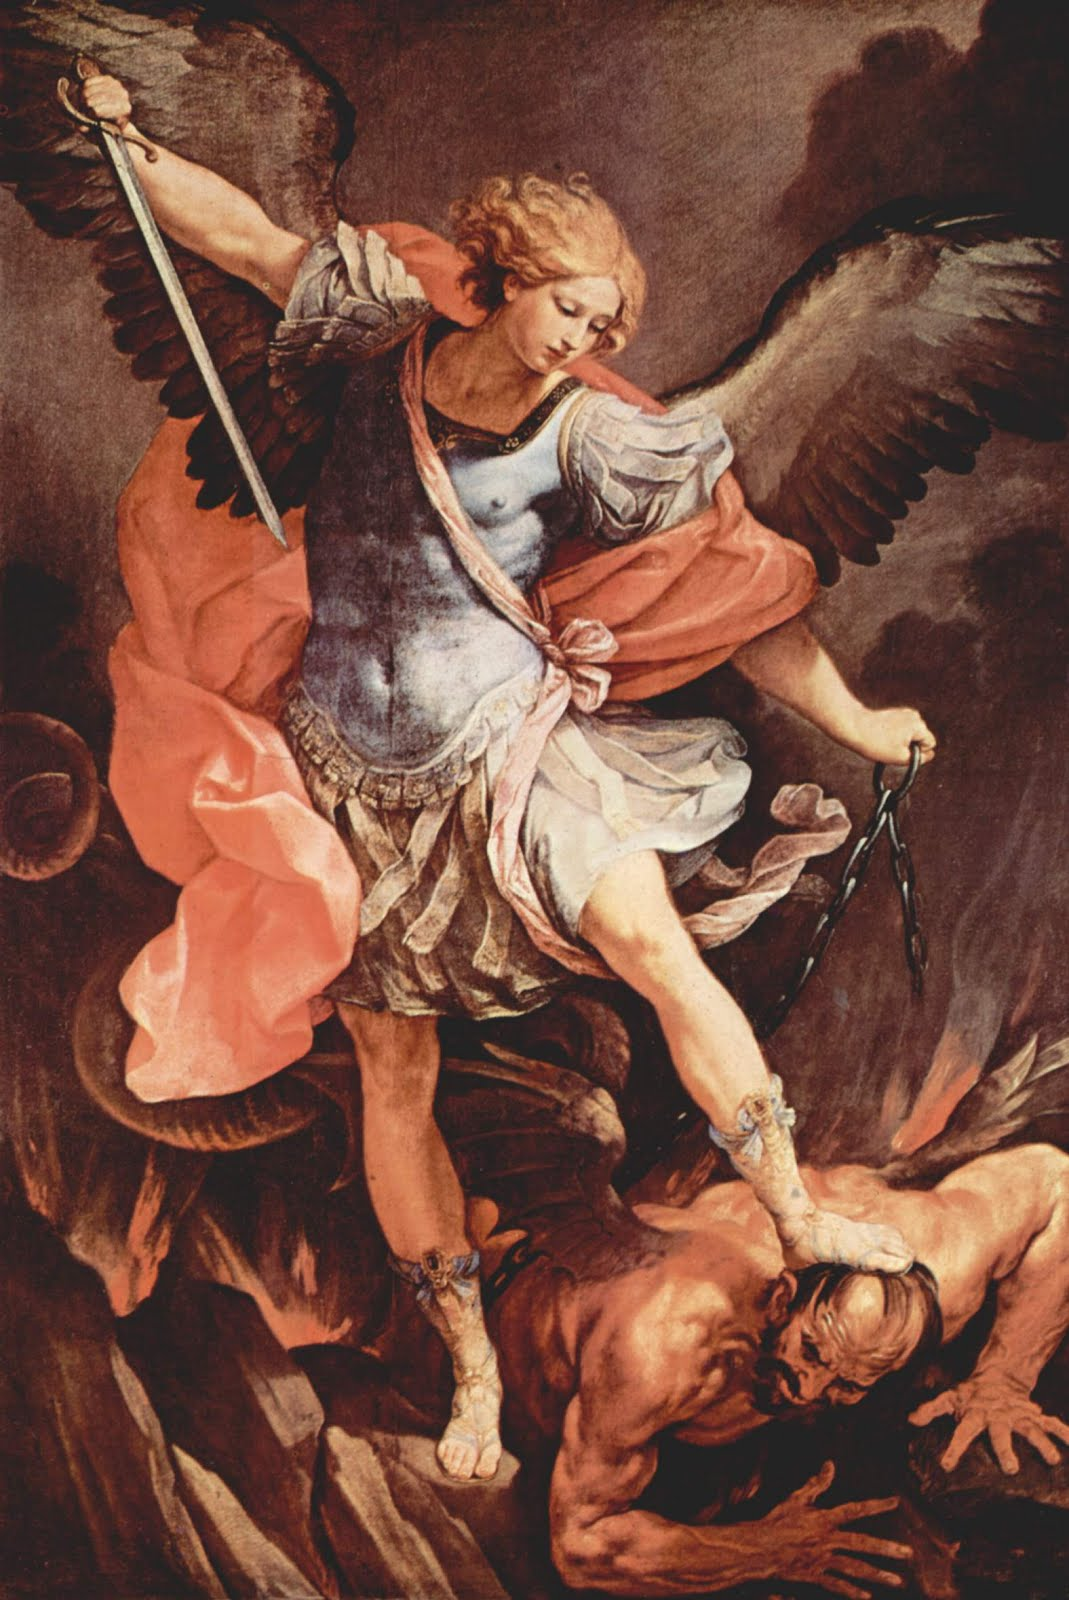 Archangel michael in you we keep our faith.